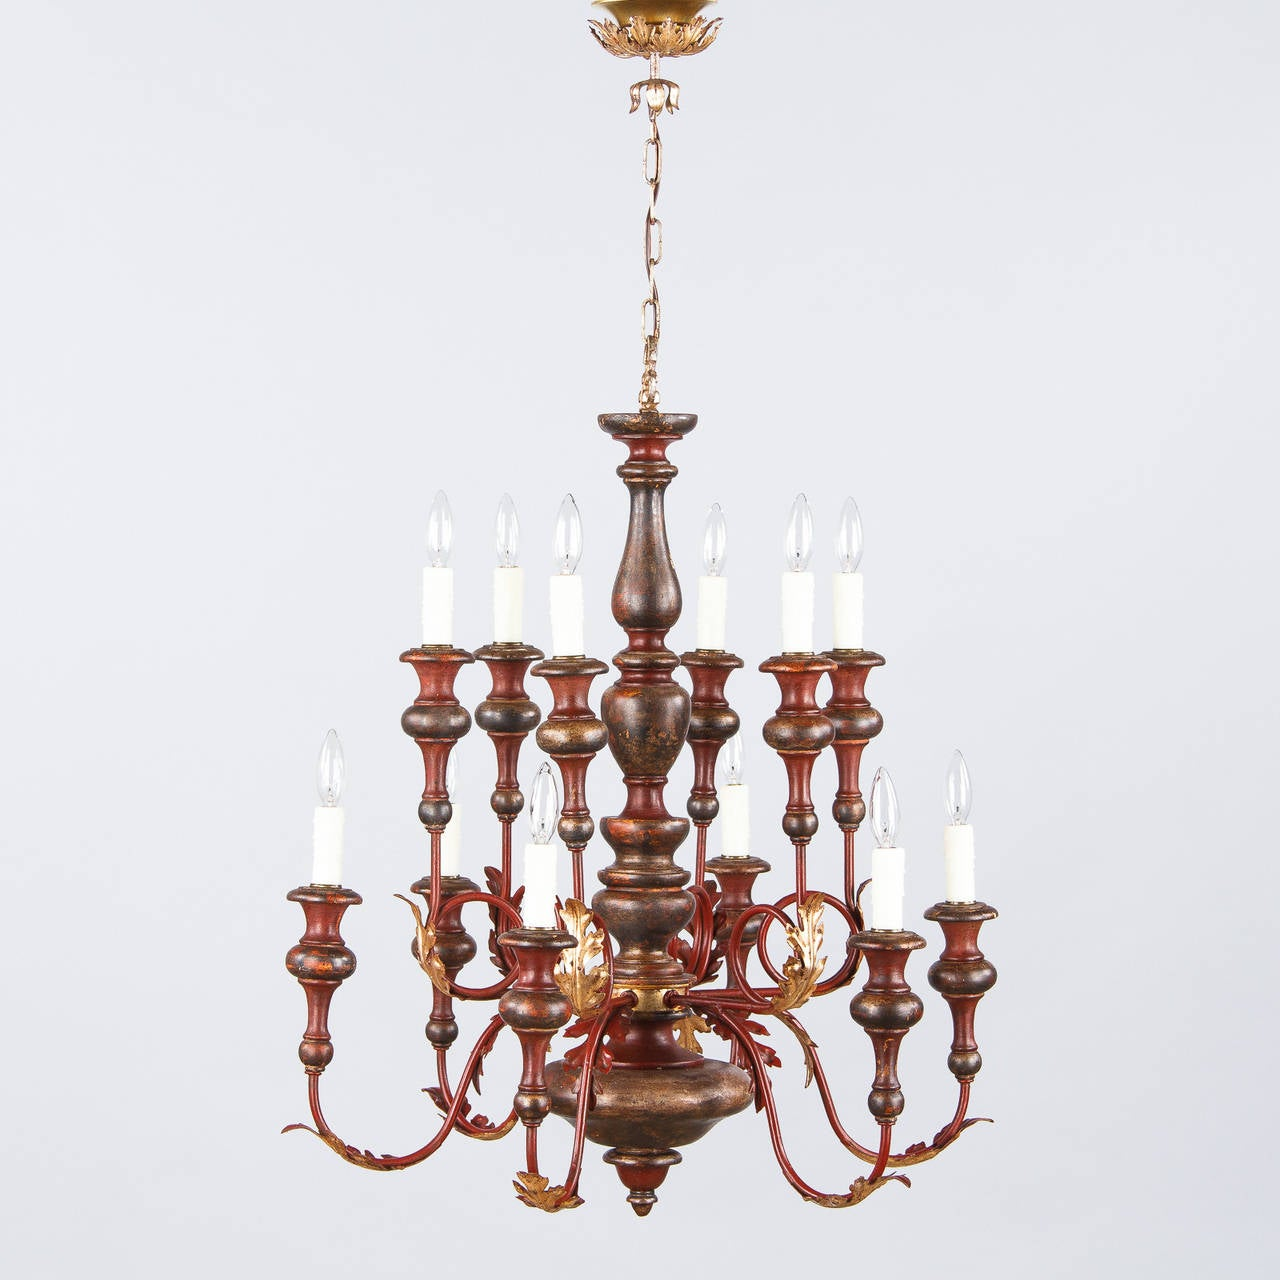 1920s Italian Painted Wood and Metal Chandelier 2